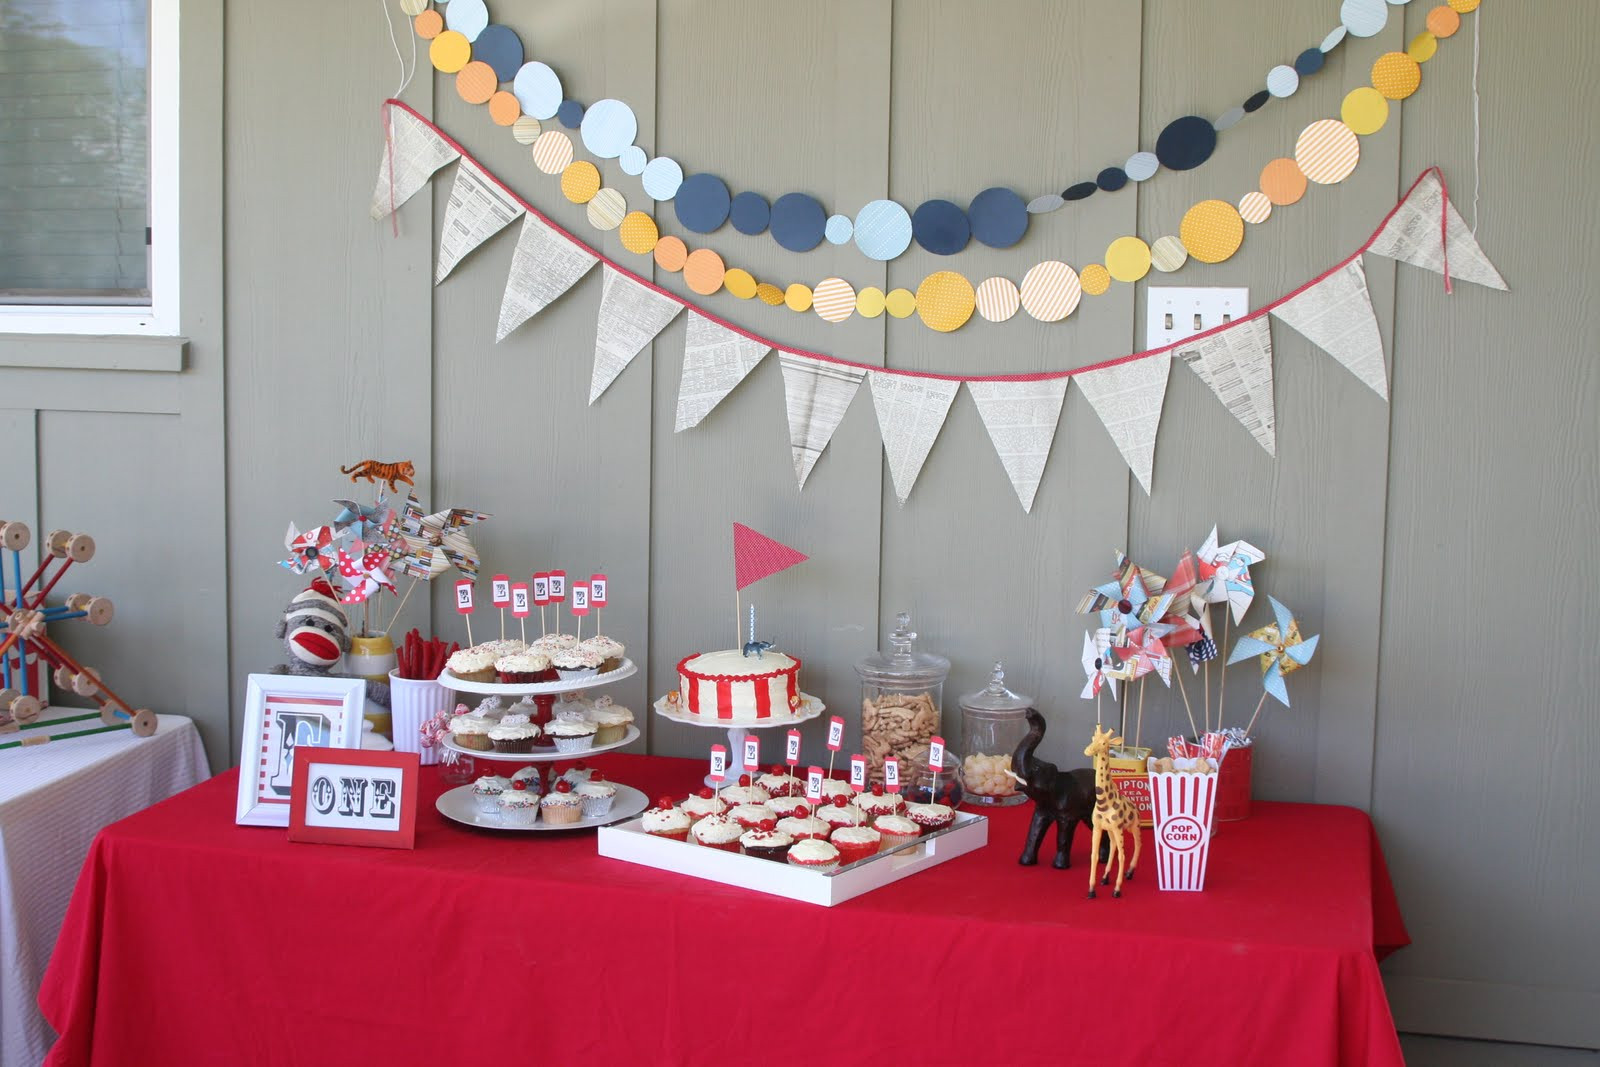 Best ideas about Birthday Decorating Ideas . Save or Pin Ideas For Party Decorations Now.